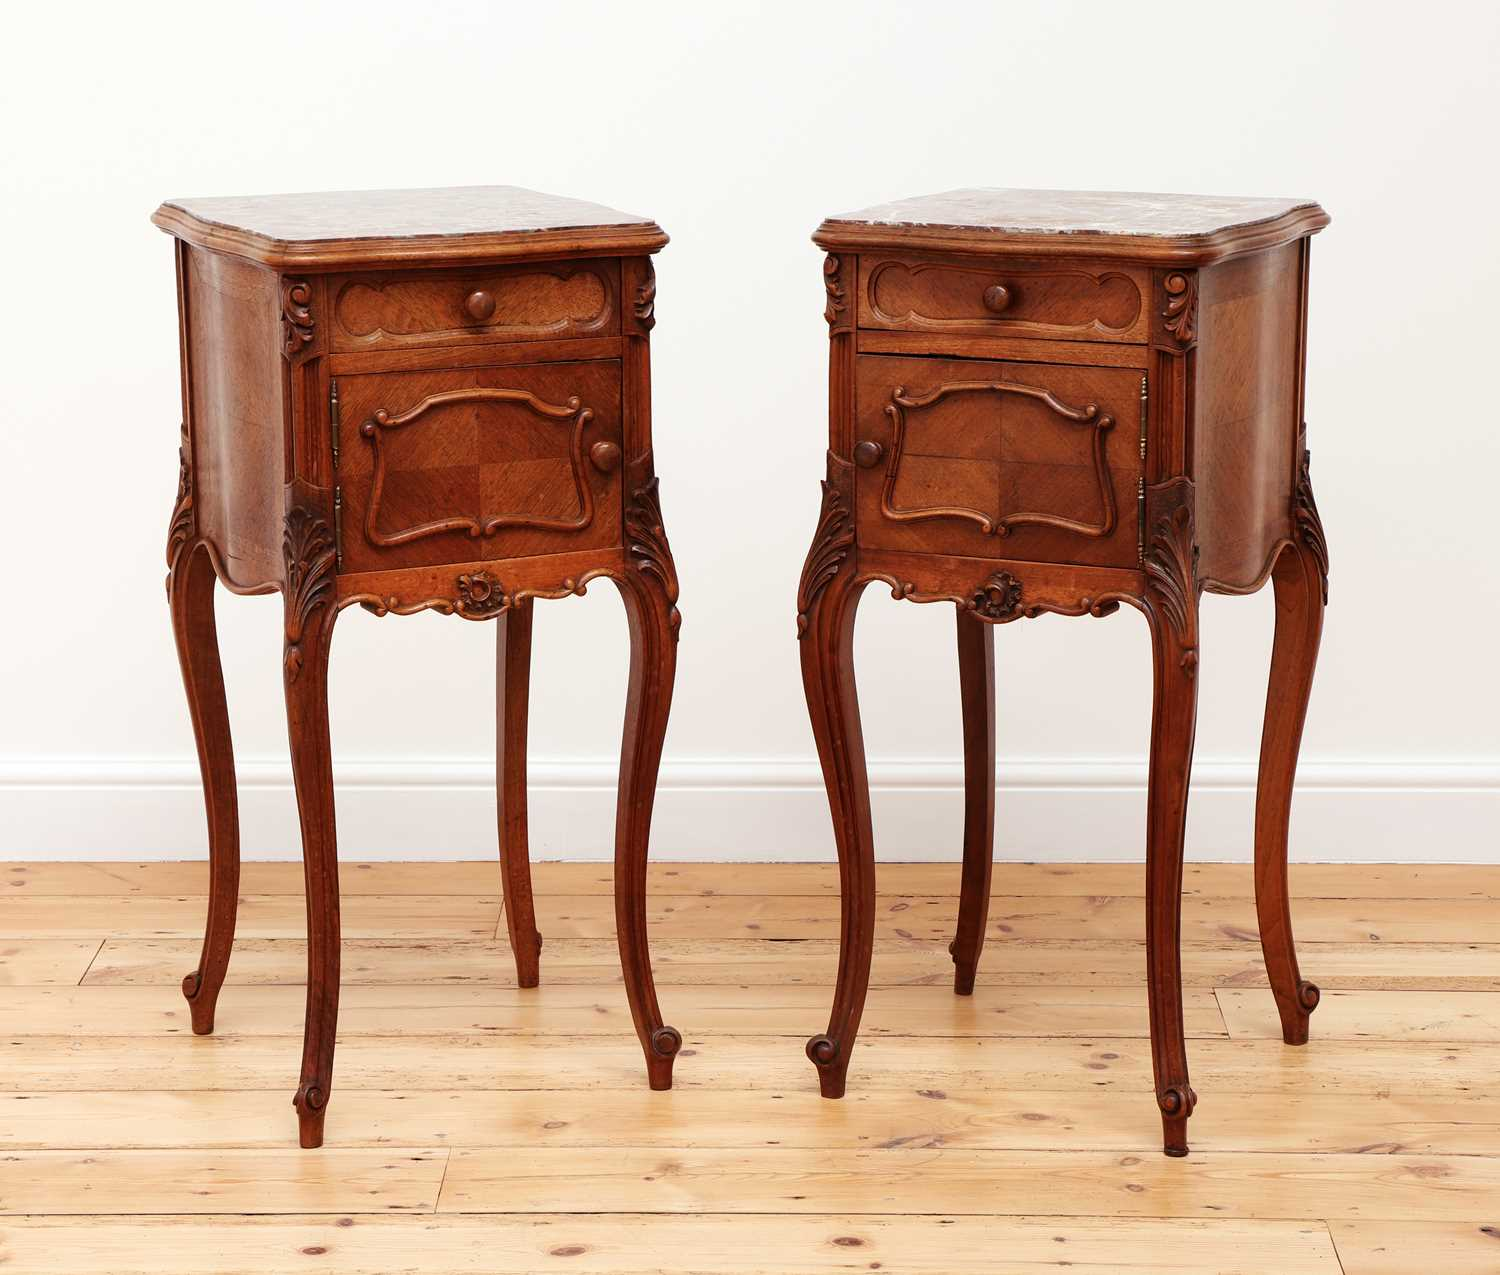 A pair of French Louis XV-style walnut bedside cabinets